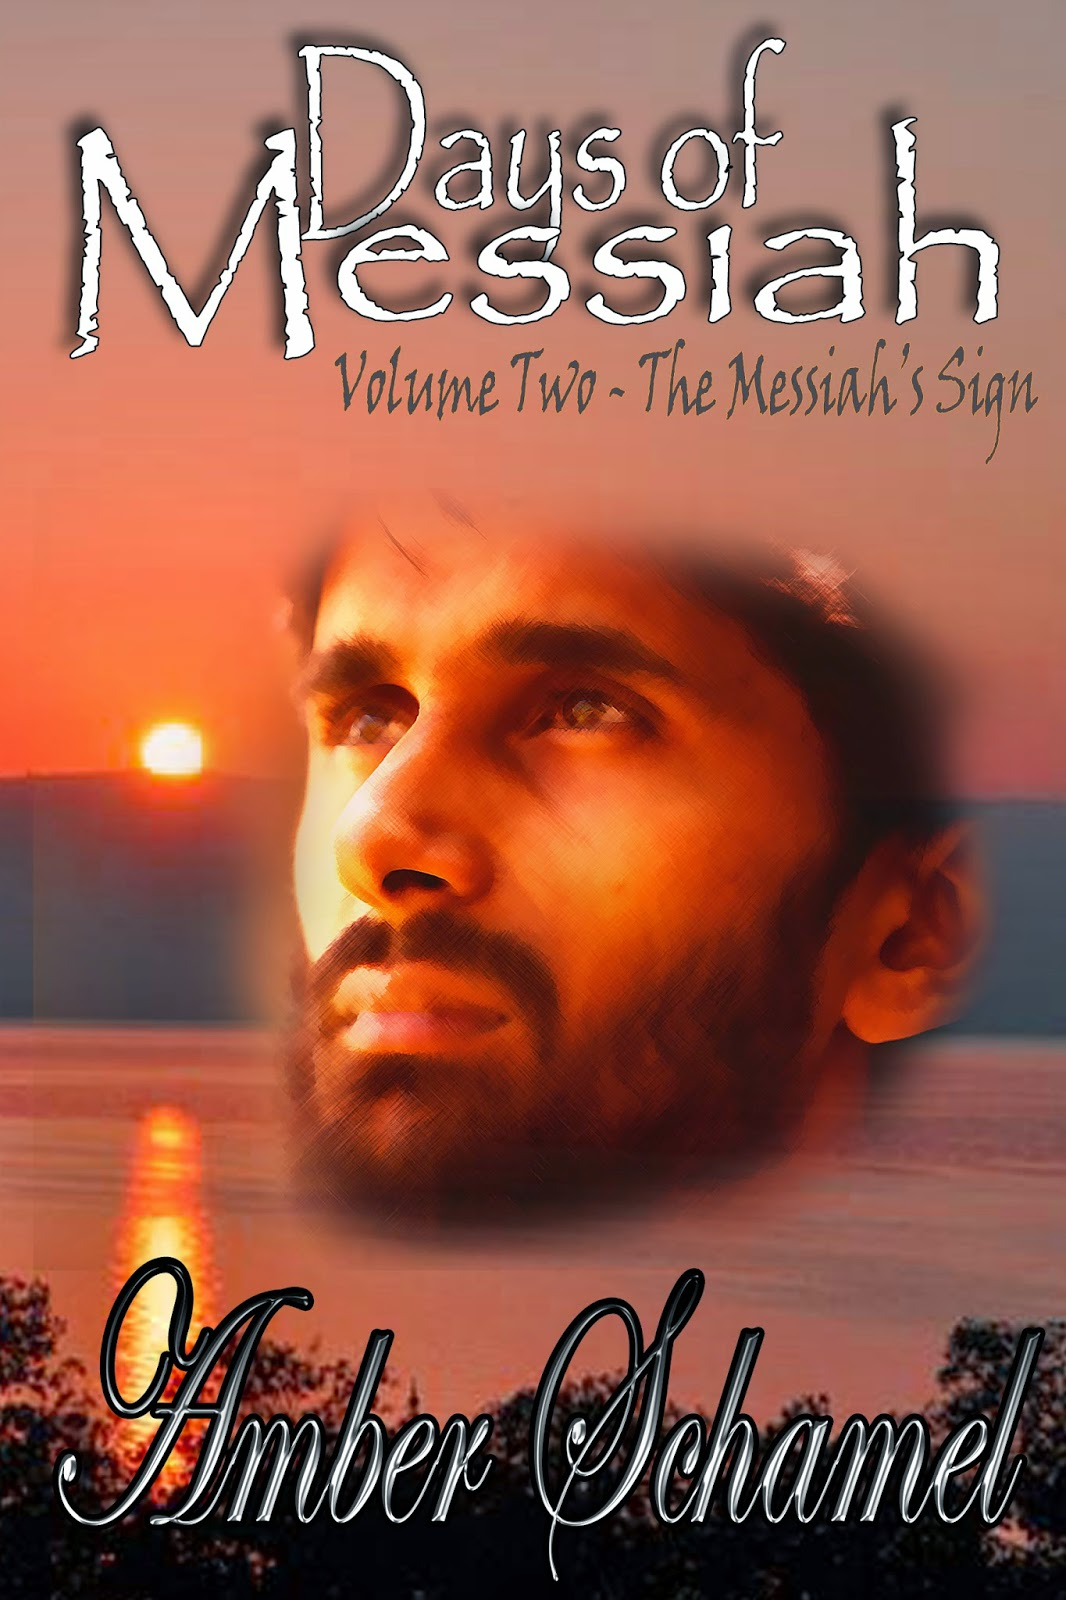 http://www.amazon.com/Days-Messiah-2-Messiahs-Sign-ebook/dp/B00OJ93IB6/ref=sr_1_3?s=digital-text&ie=UTF8&qid=1413400281&sr=1-3&keywords=amber+schamel